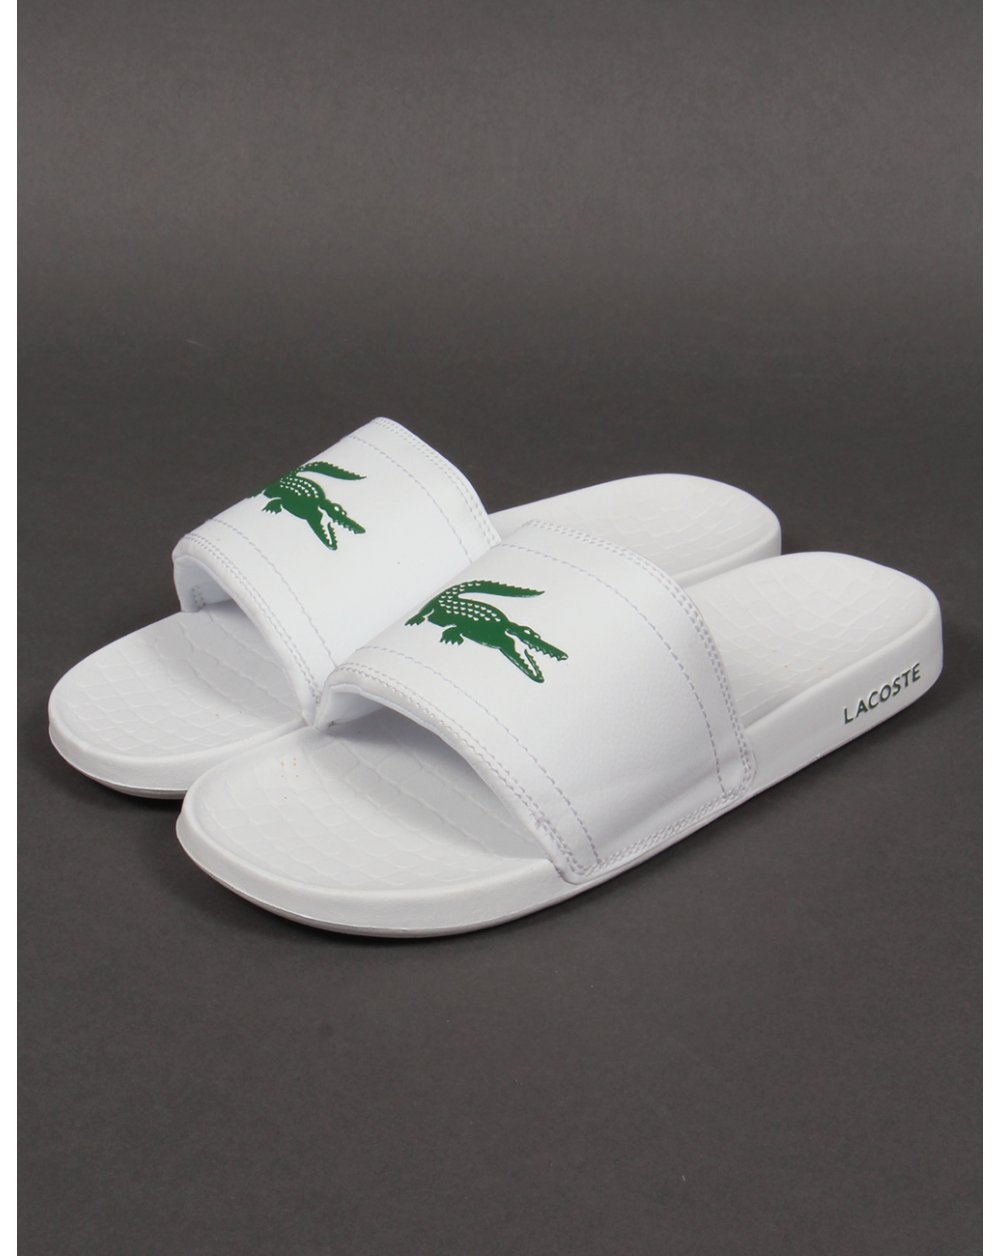 Lacoste Fraisier Pool Sliders White,sandals,flip flops,mens